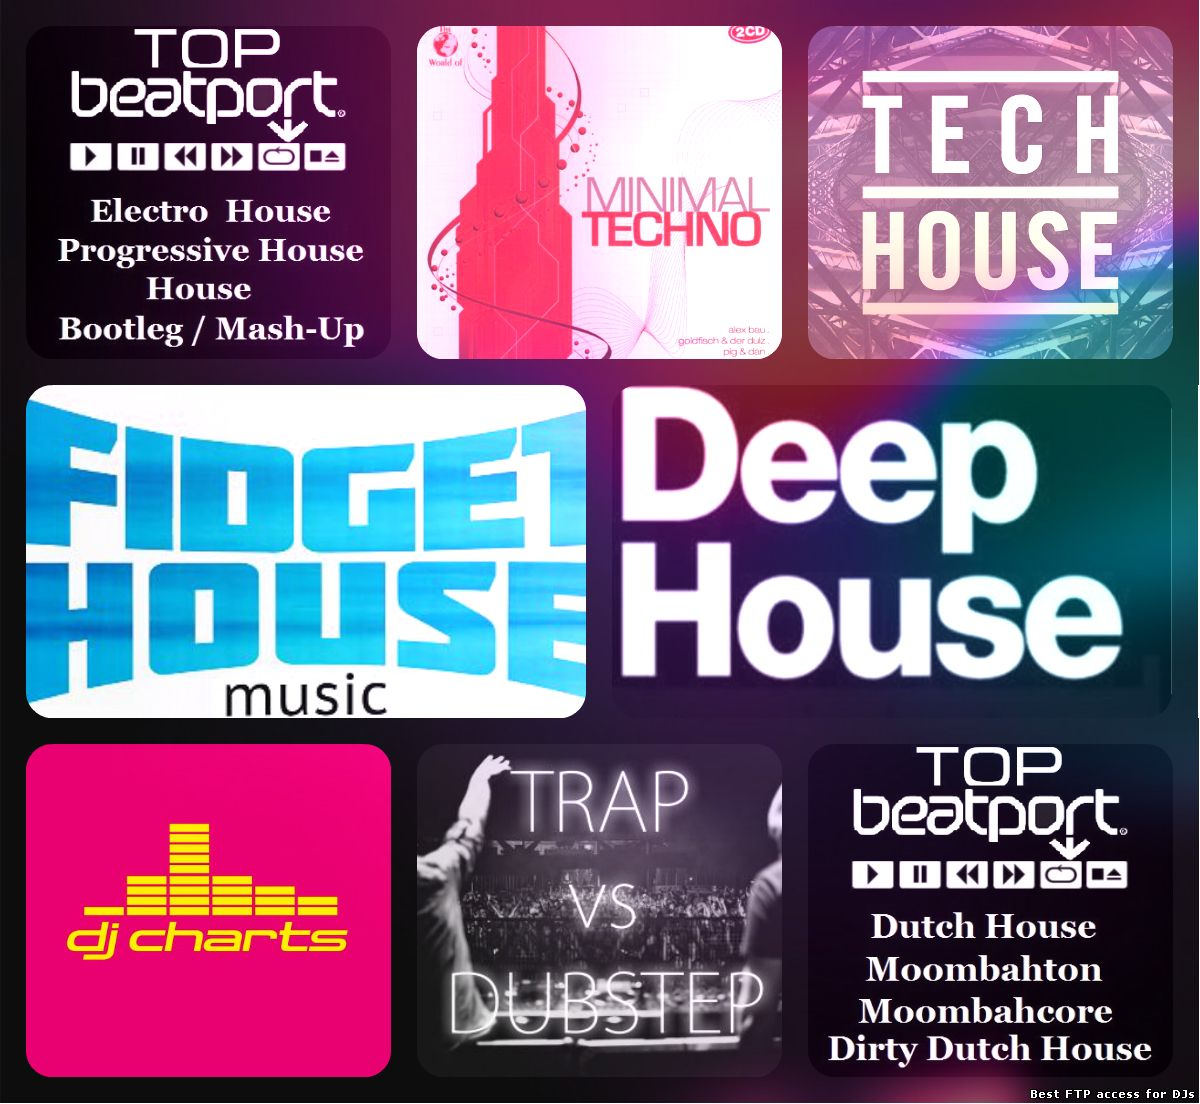 Music for djs hot tracklist new mp3 club music albums for Deep house music mix